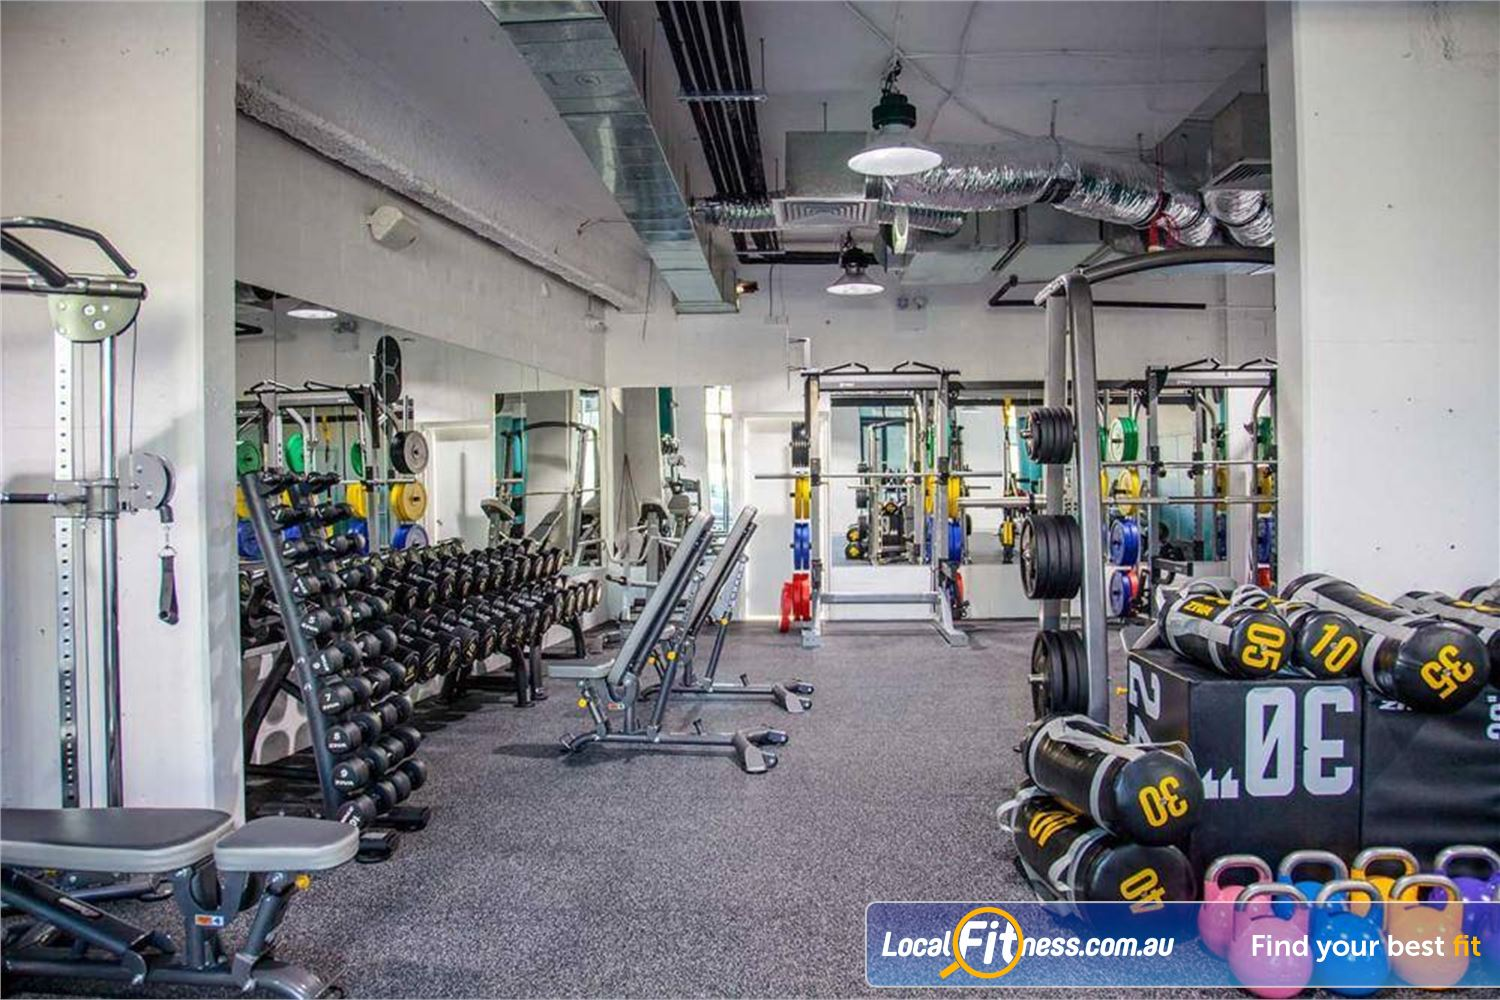 Rushcutters Health Near Woolloomooloo The fully equipped Rushcutters Bay gym space.